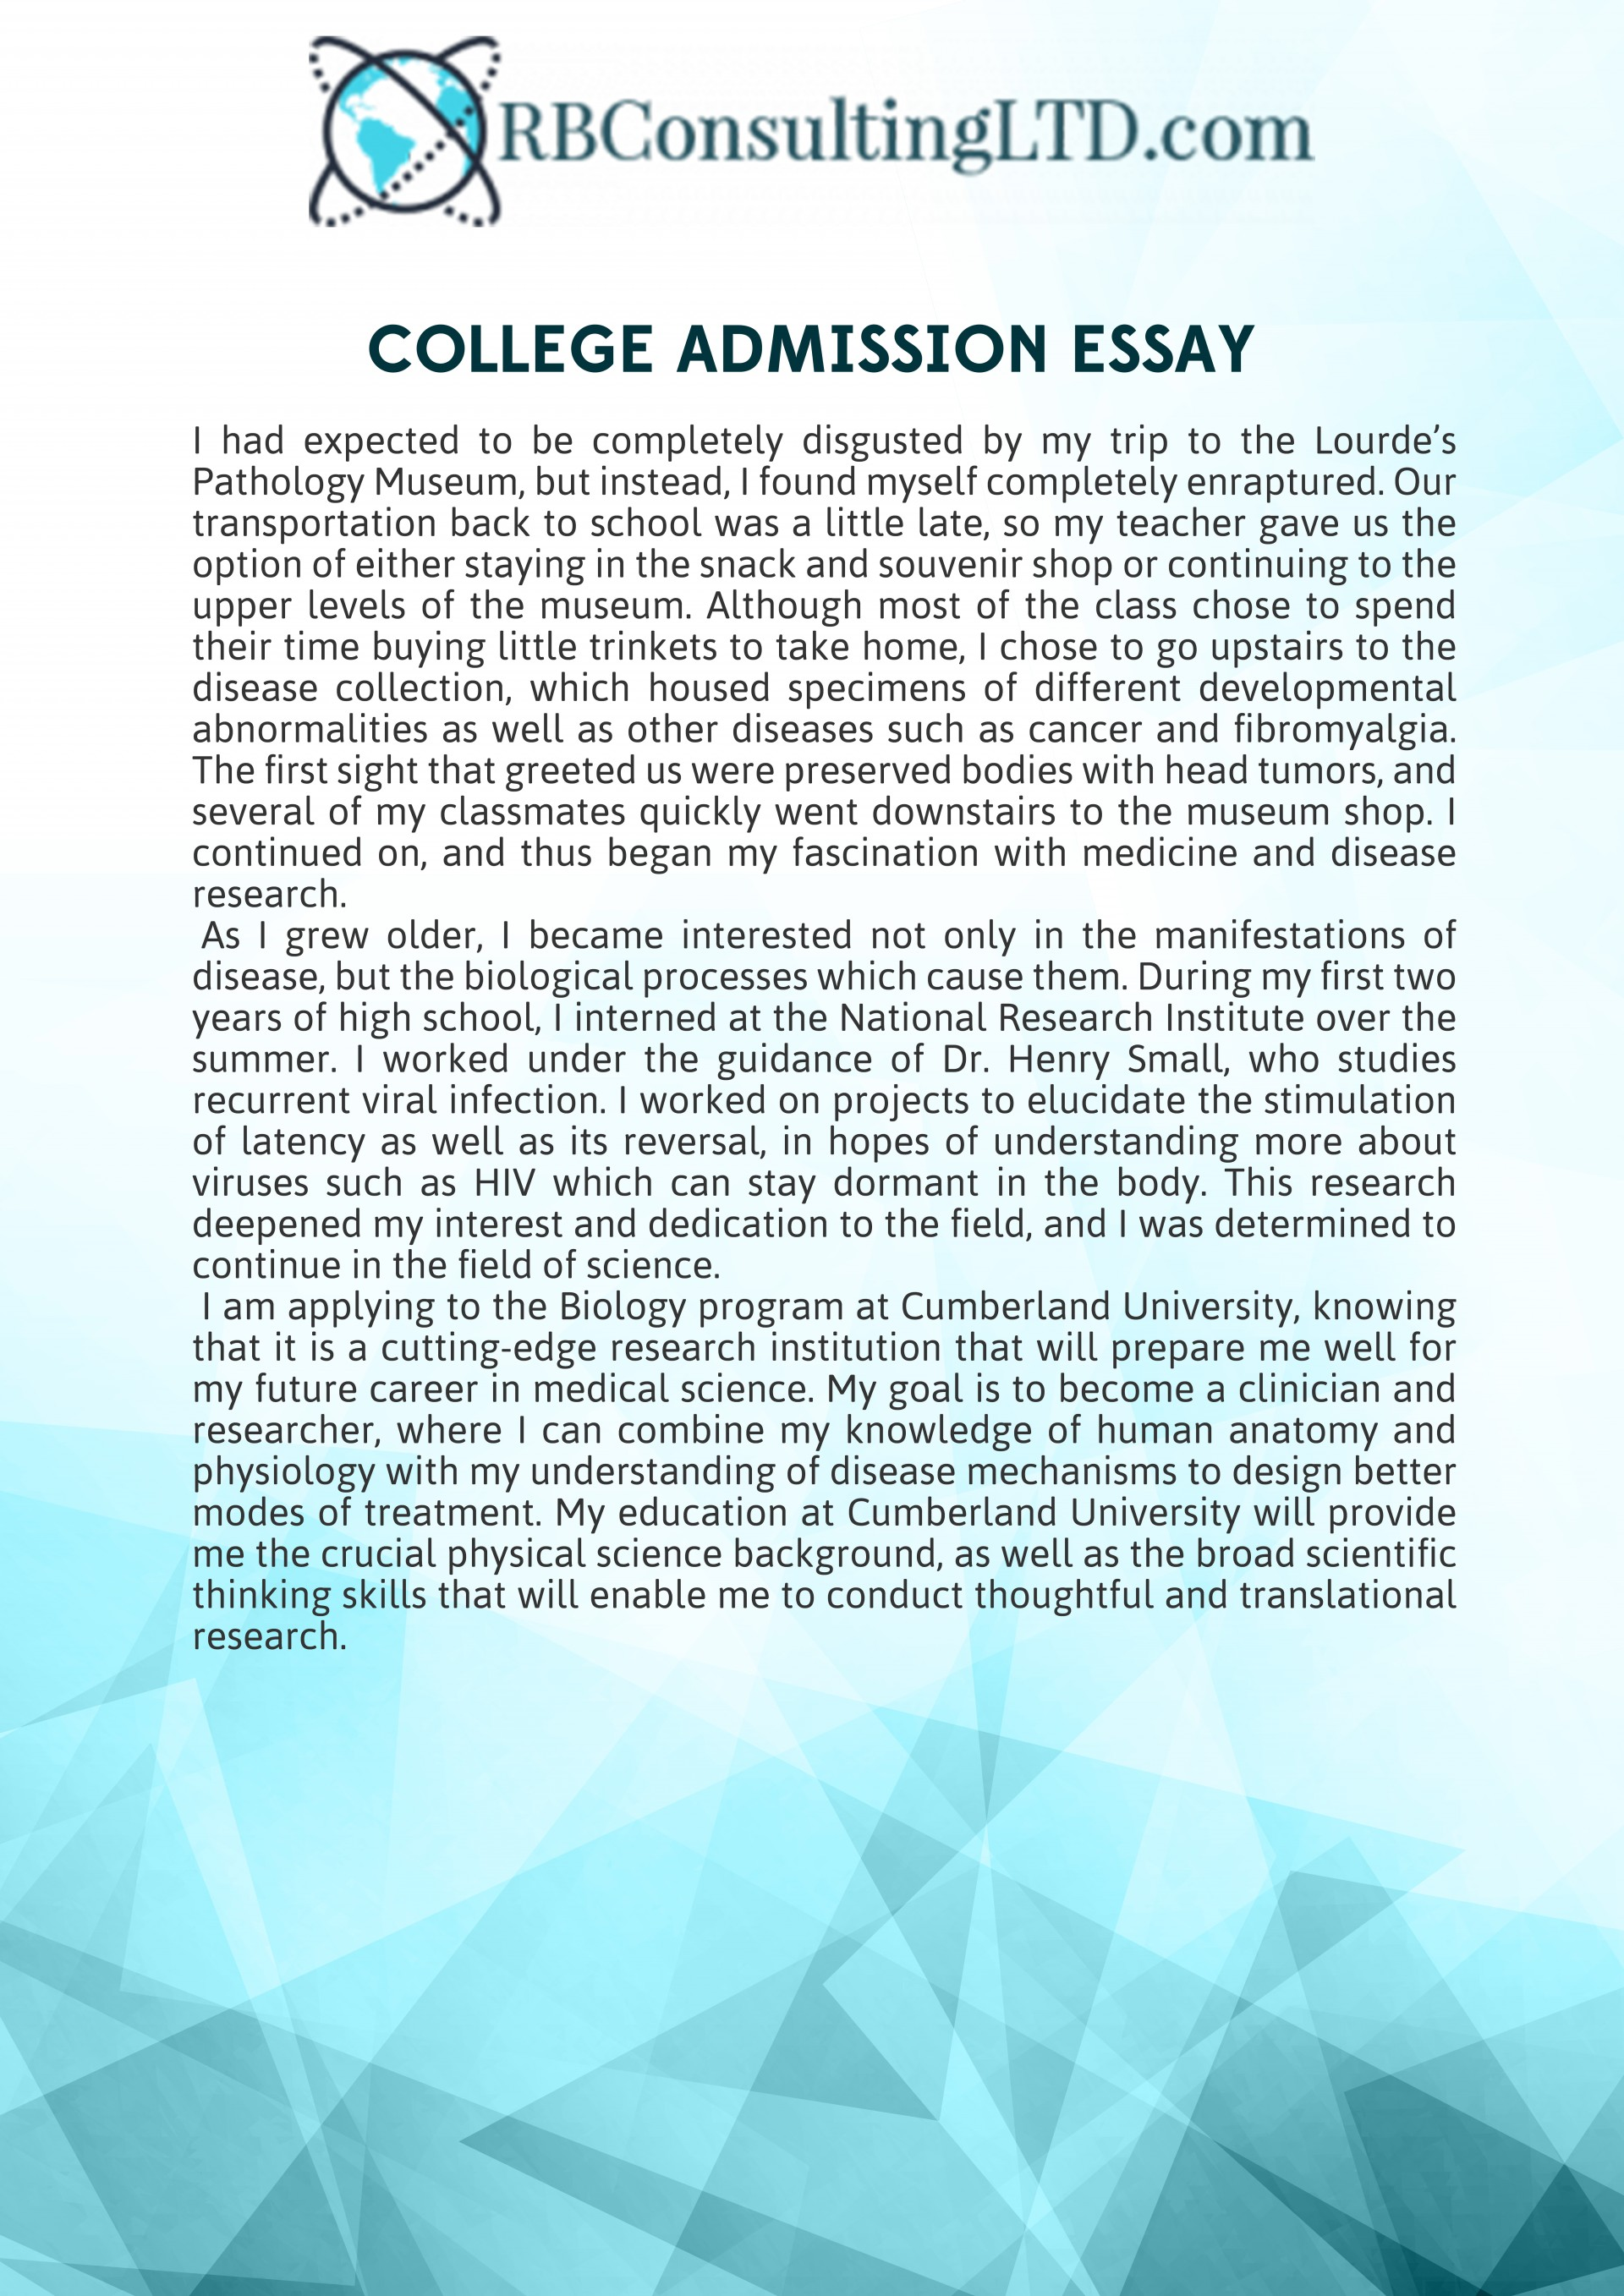 024 College Admission Essay Sample Impressive Mba Samples Pdf Free For Graduate School 1920